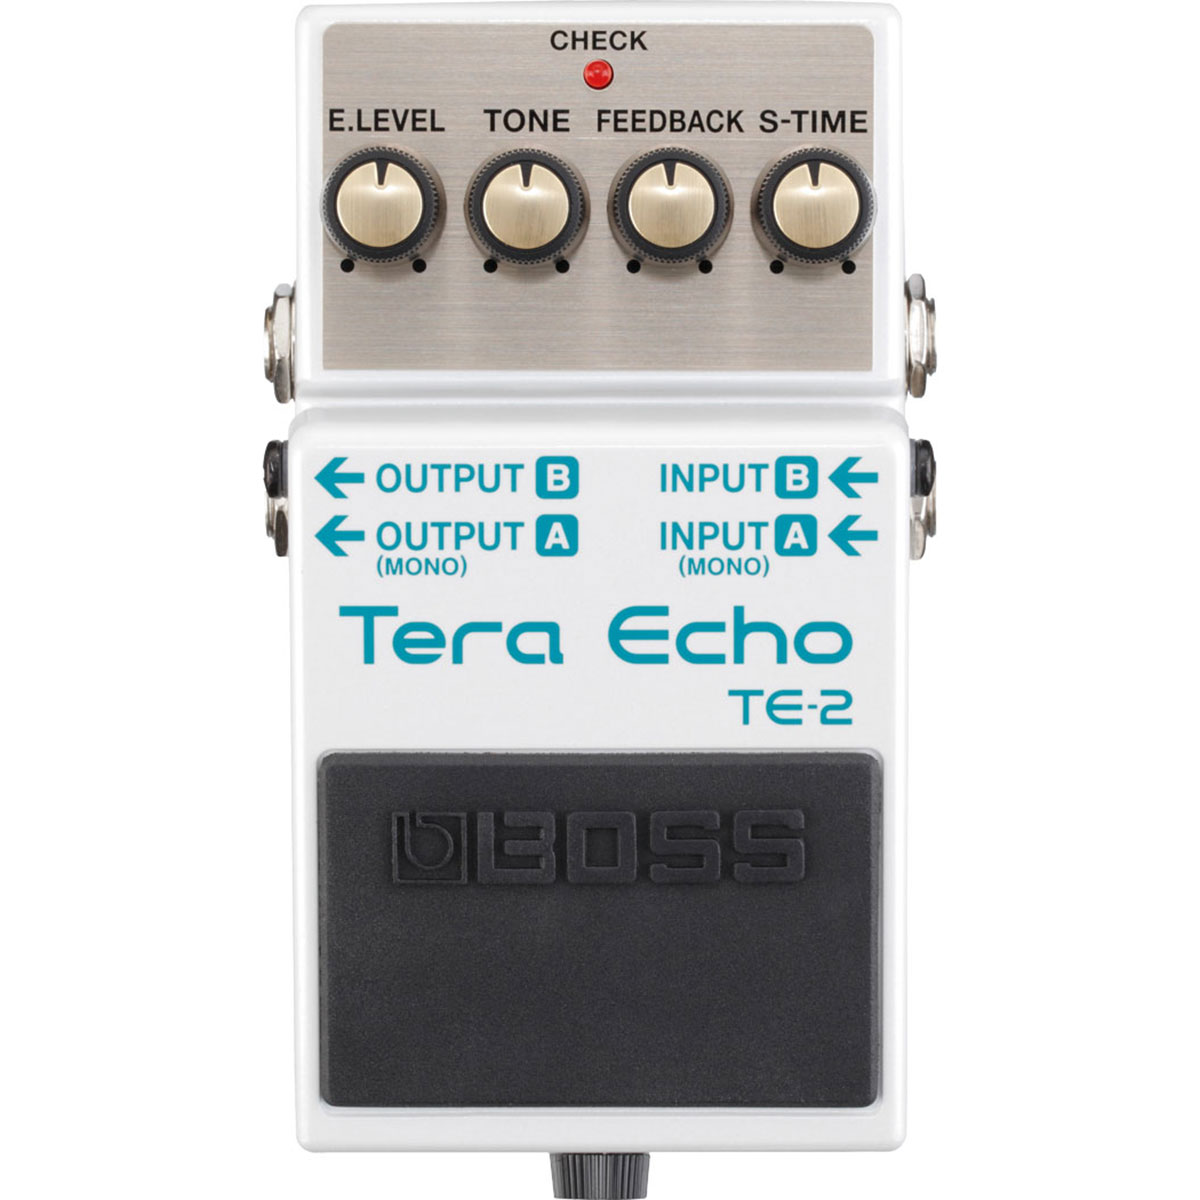 BOSS Audio TE-2 Tera Echo Compact Stompbox Guitar Ambience Effects Bass Pedal by Boss Audio